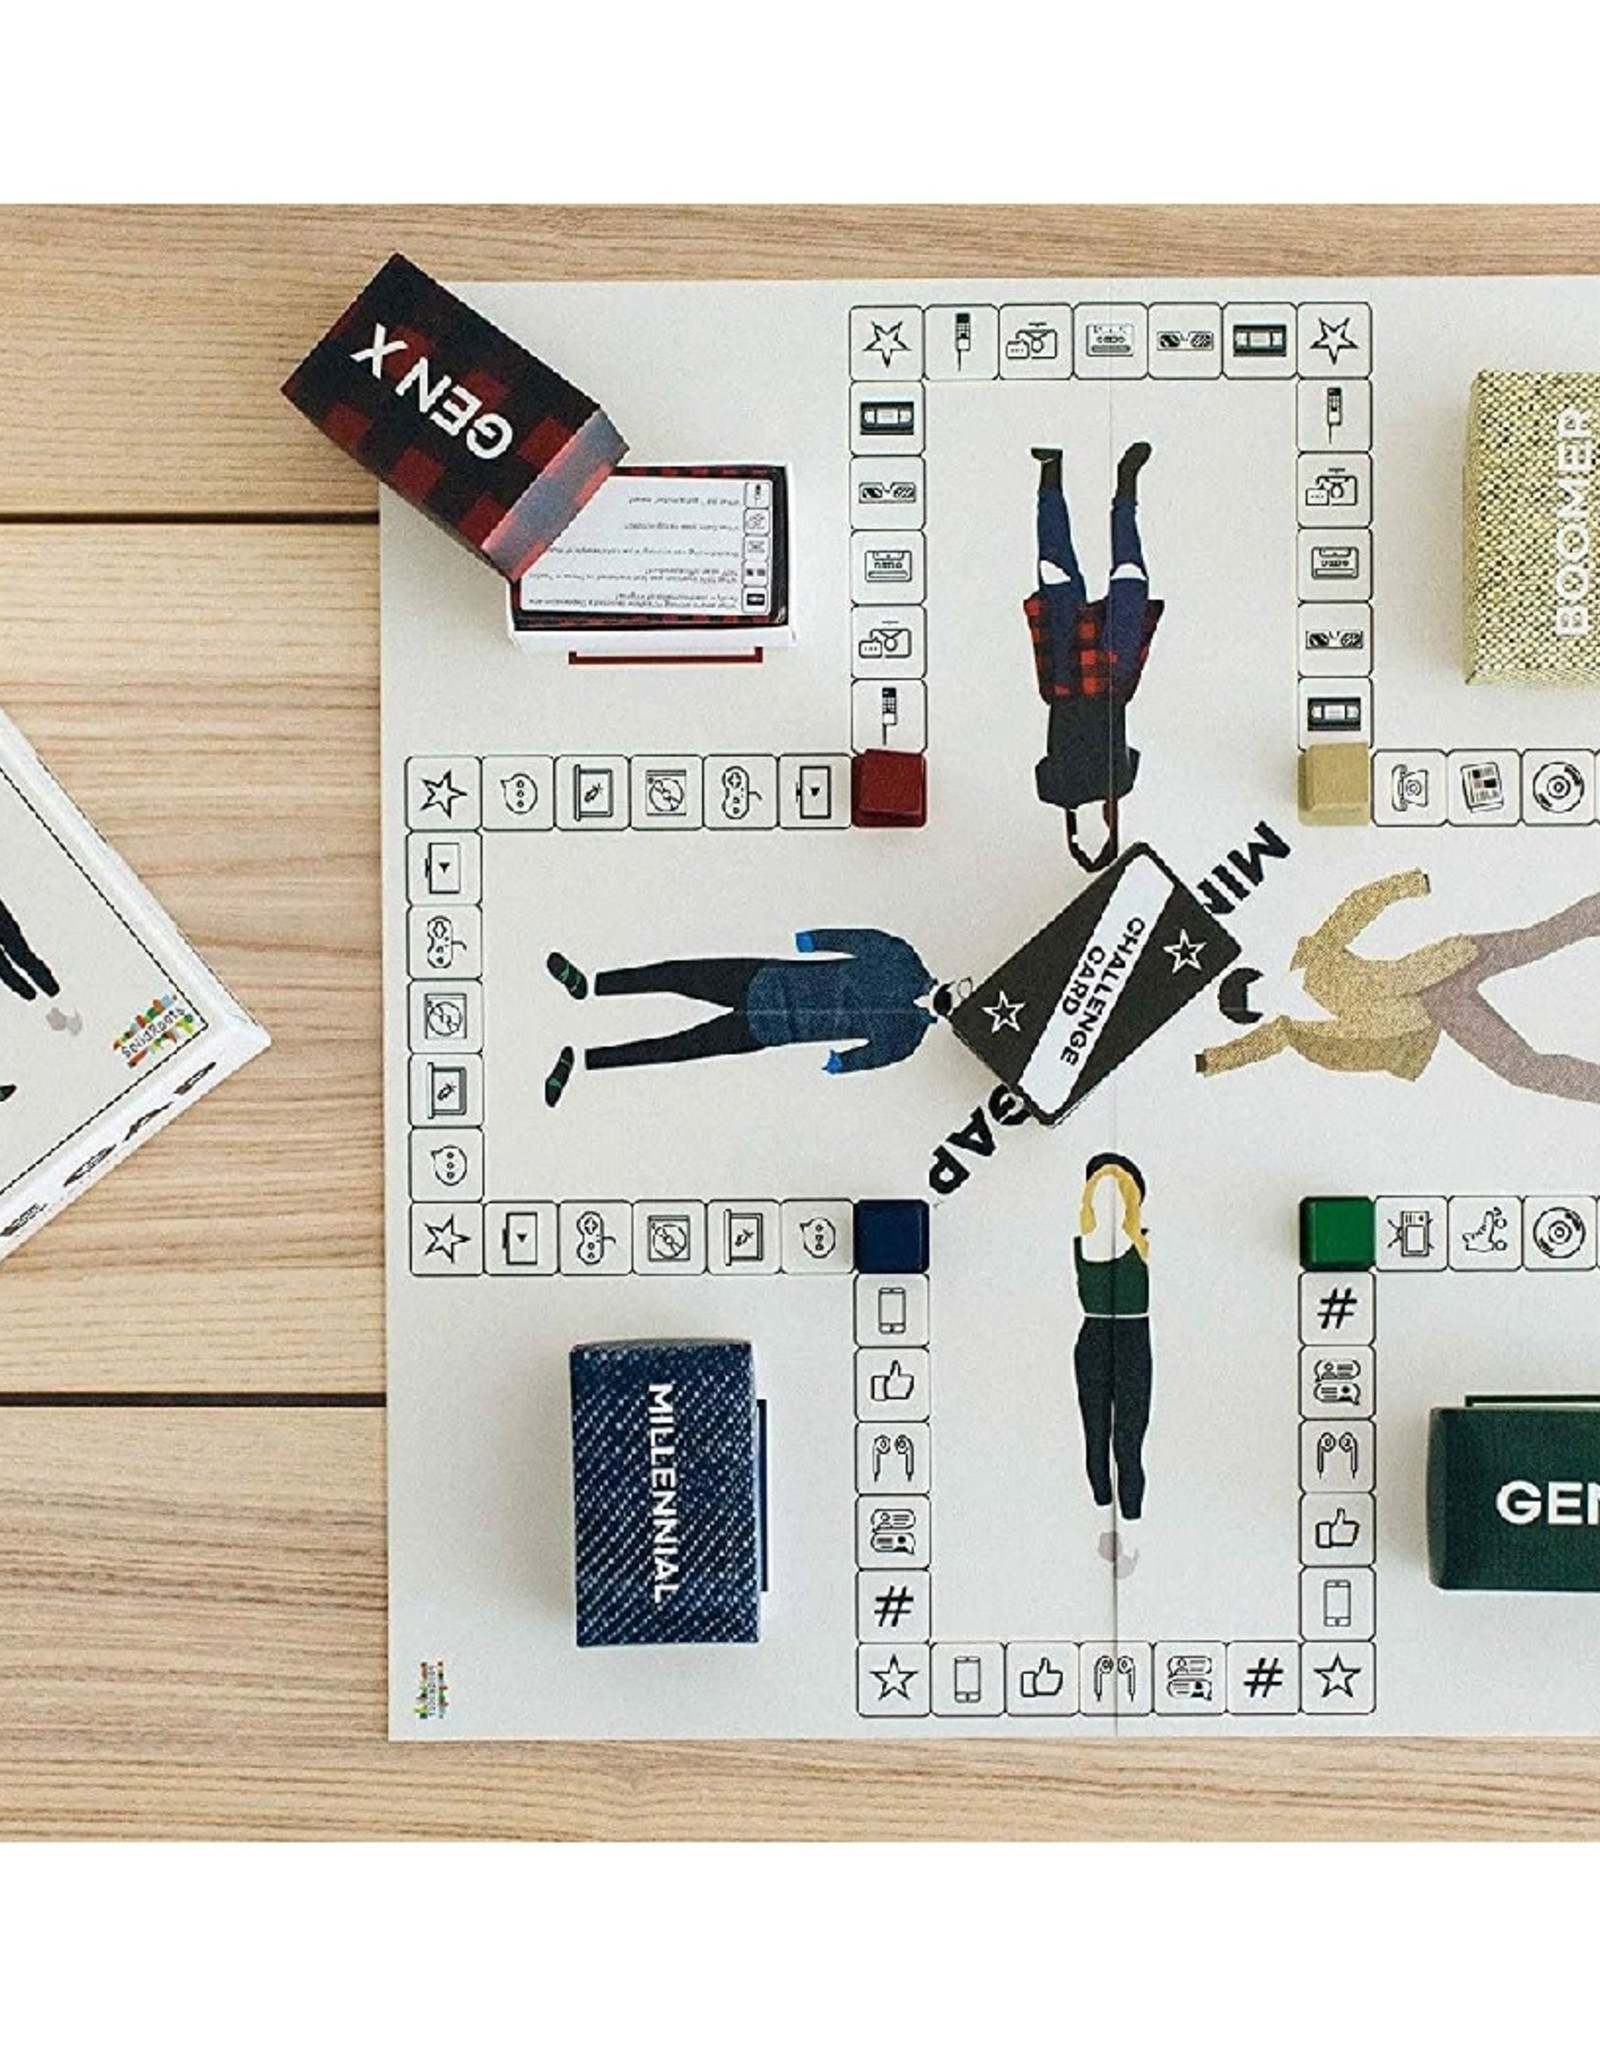 Mind the Gap - The Generational Trivia Game